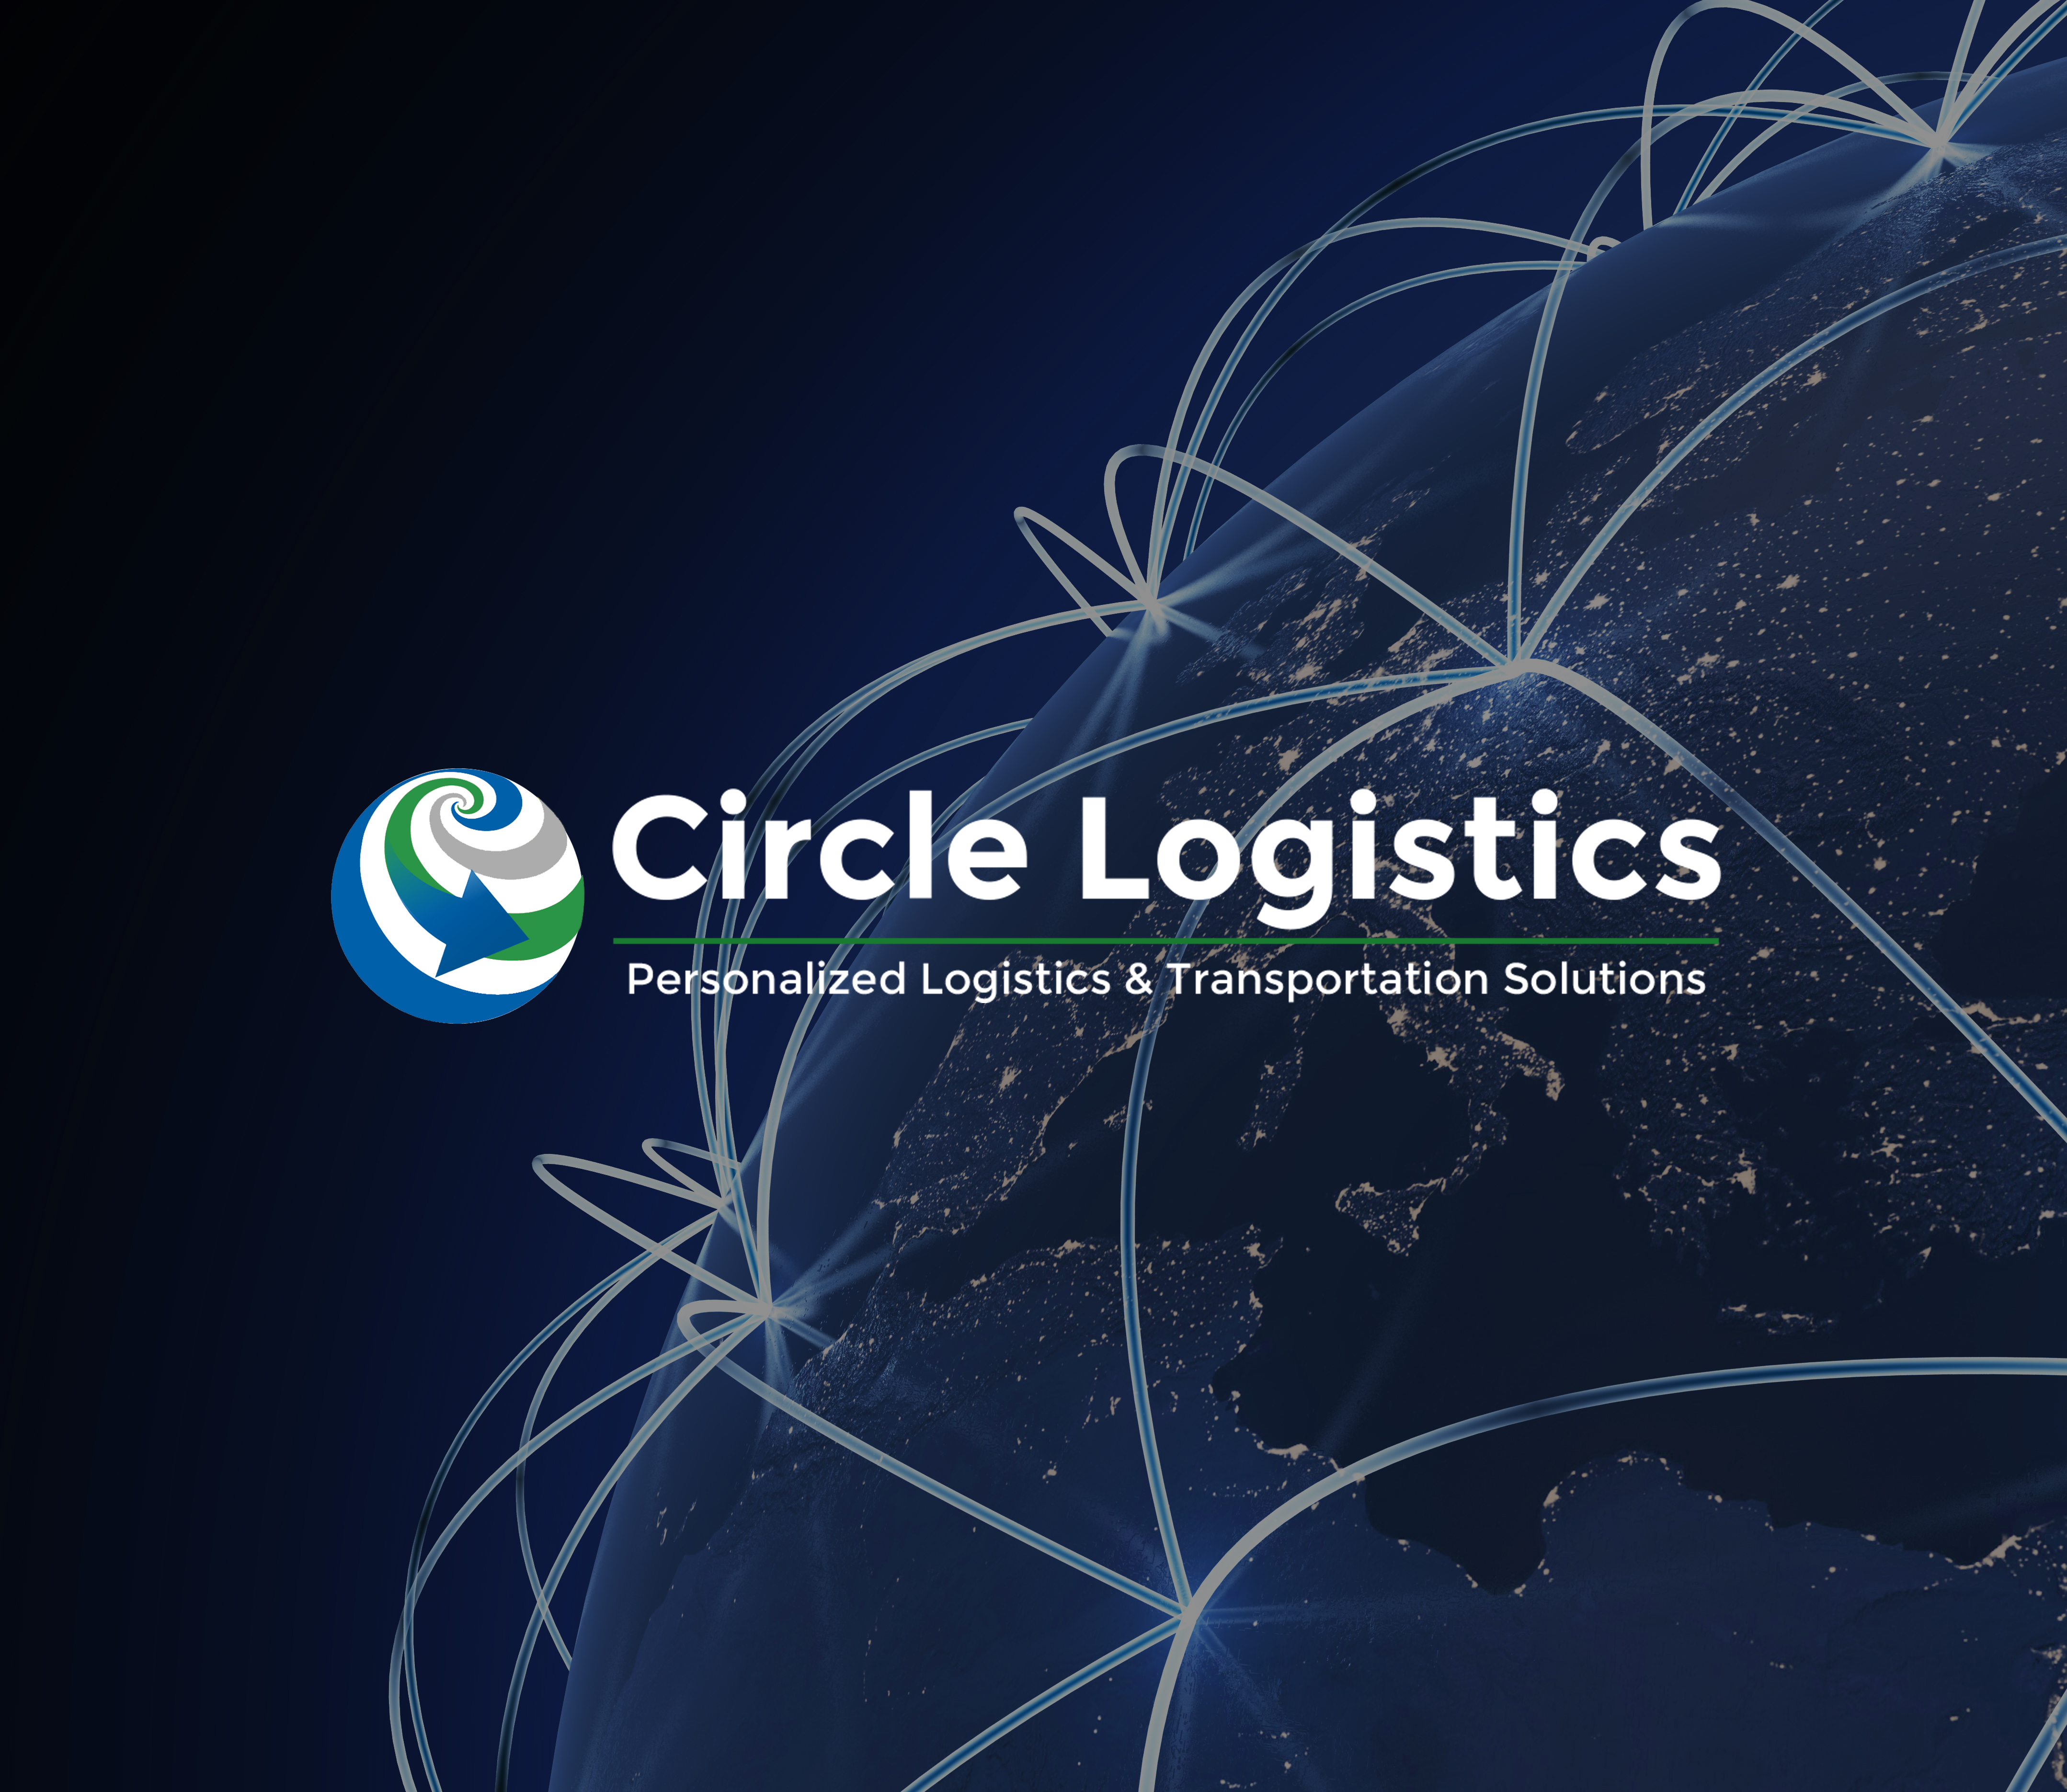 THE CIRCLE DELIVERS logo